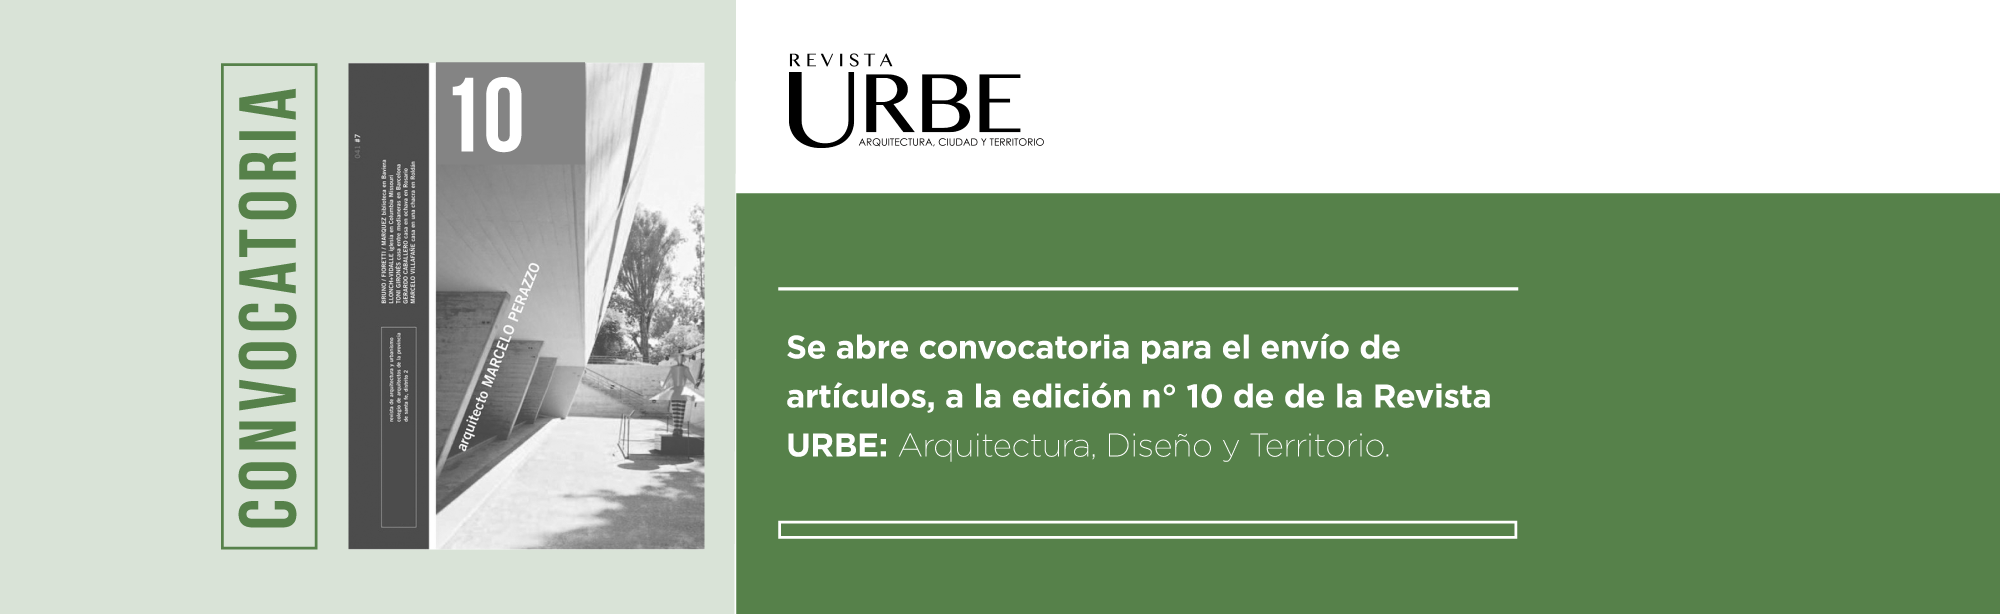 Slider_Convocatoria_Urbe